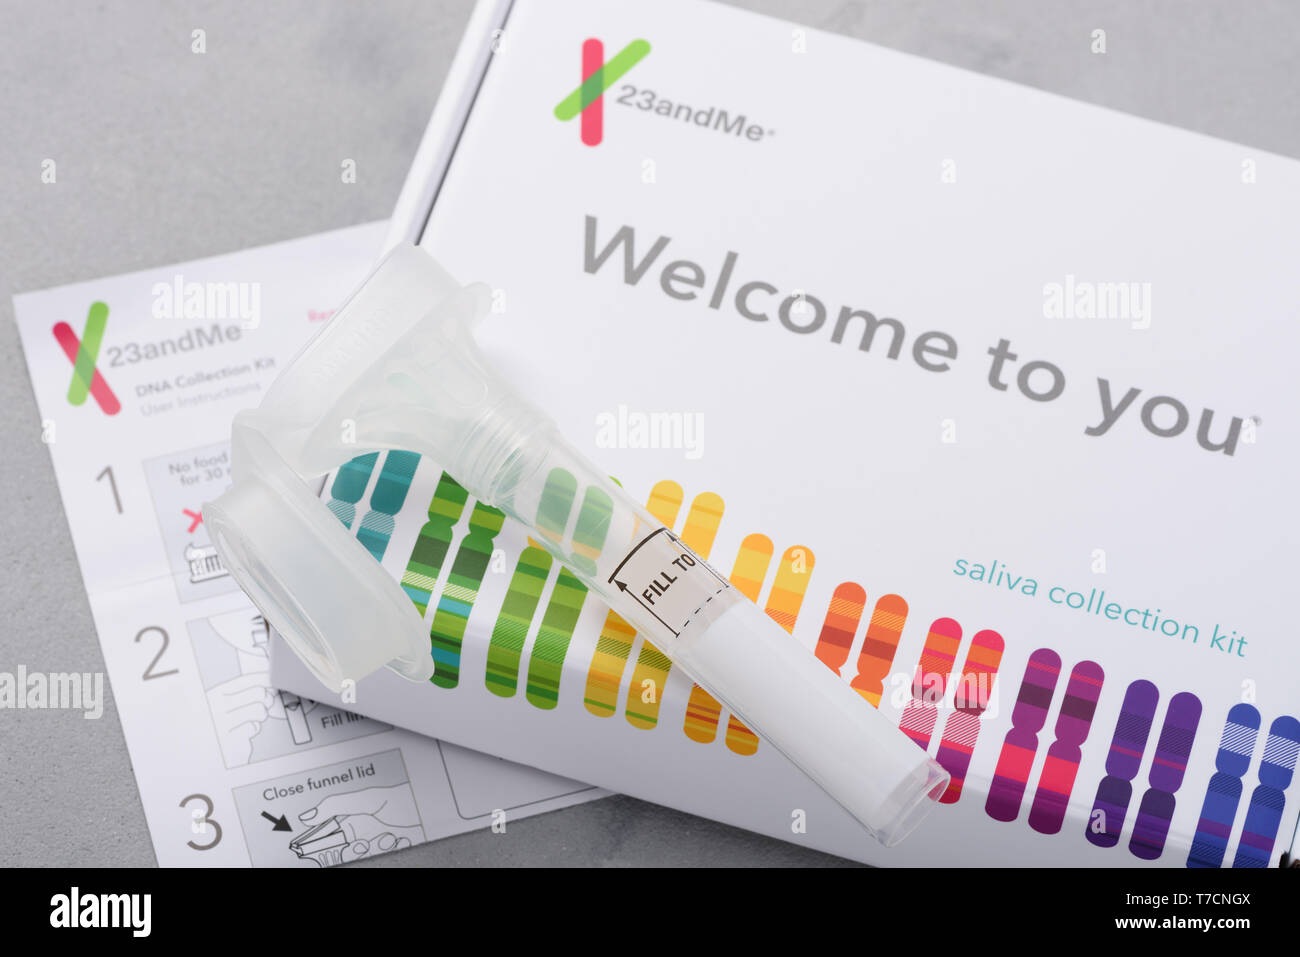 Kiev, Ukraine - 17 October 2018: 23andMe personal genetic test saliva collection kit, with tube, box and instructions. Illustrative editorial. - Stock Image